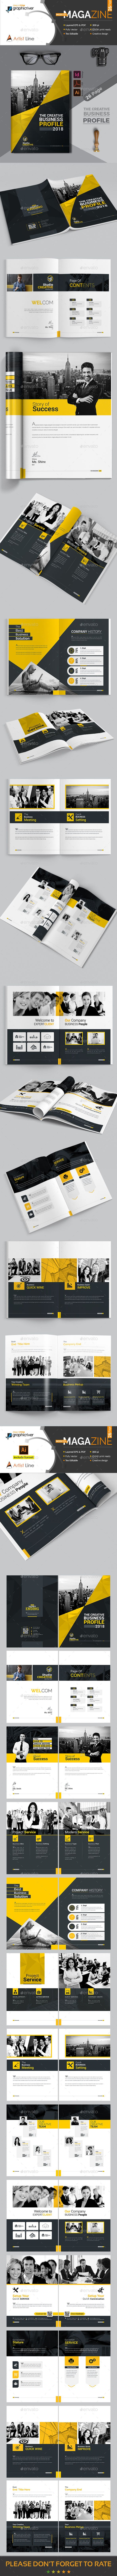 Company Report Template Vector EPS, InDesign INDD, AI Illustrator ...